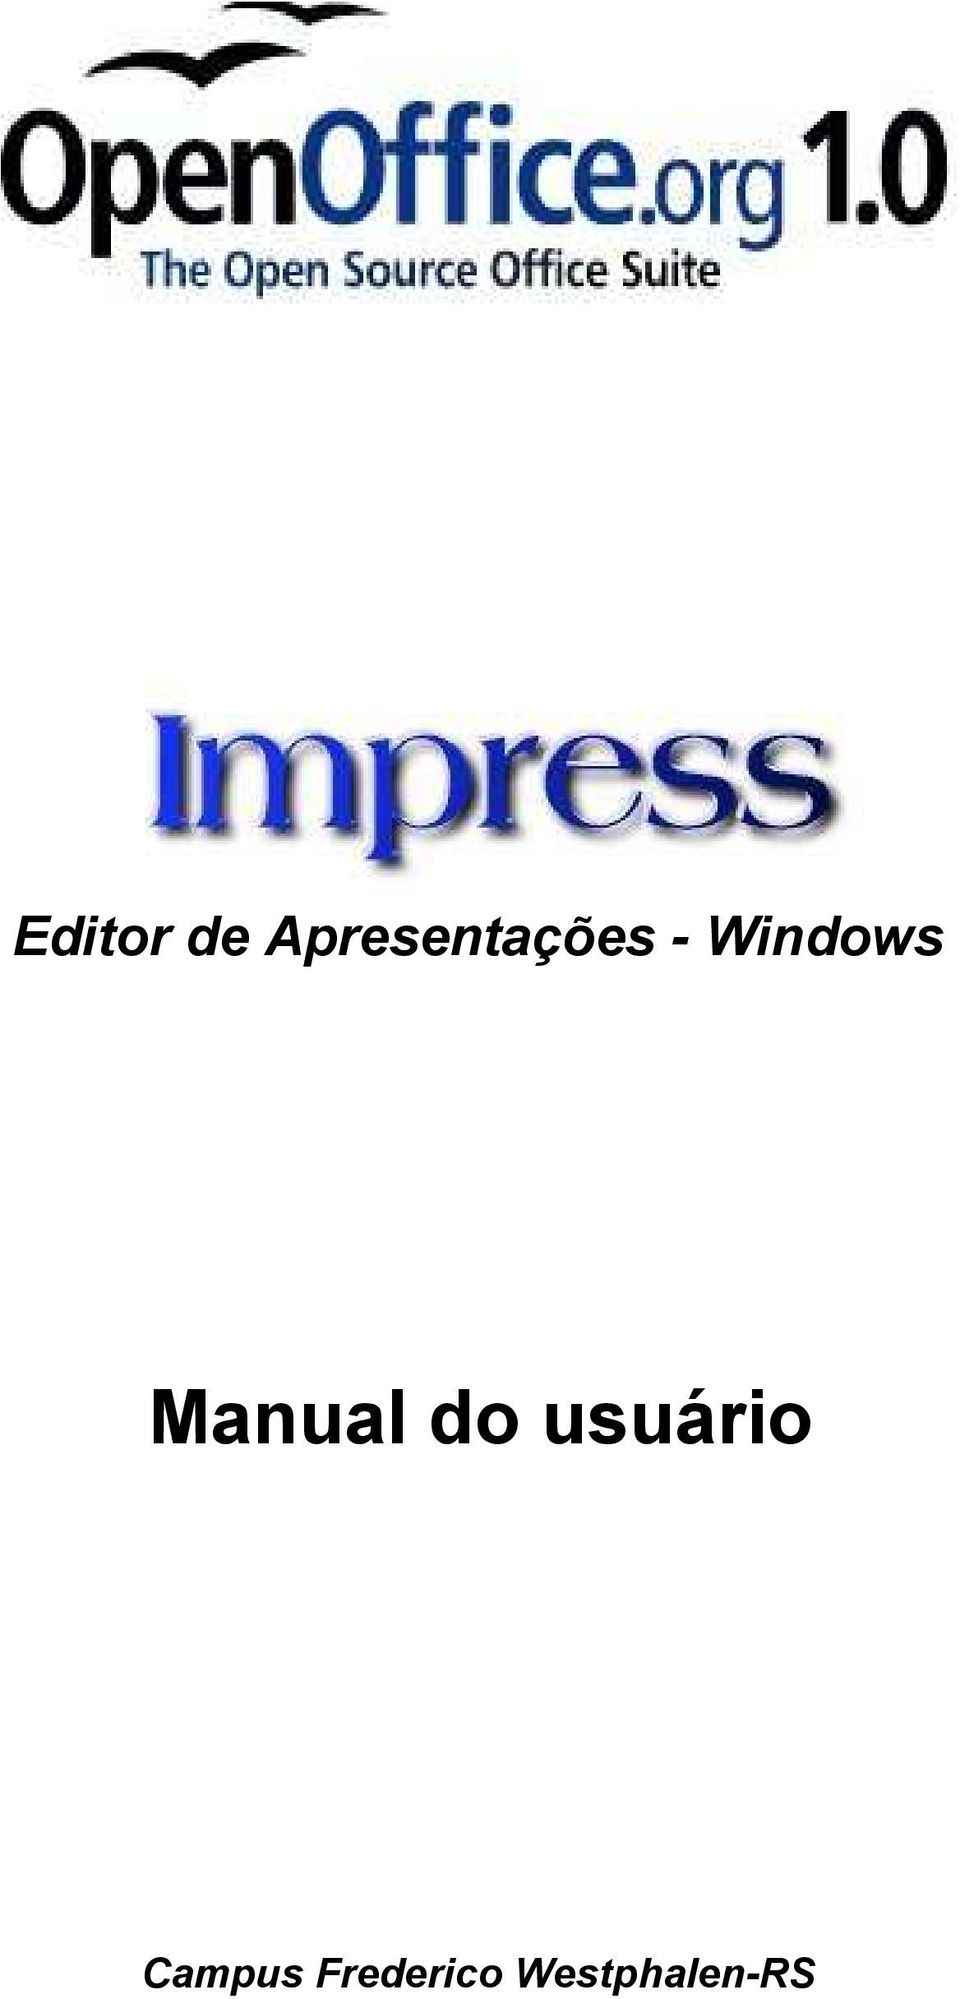 Windows Manual do